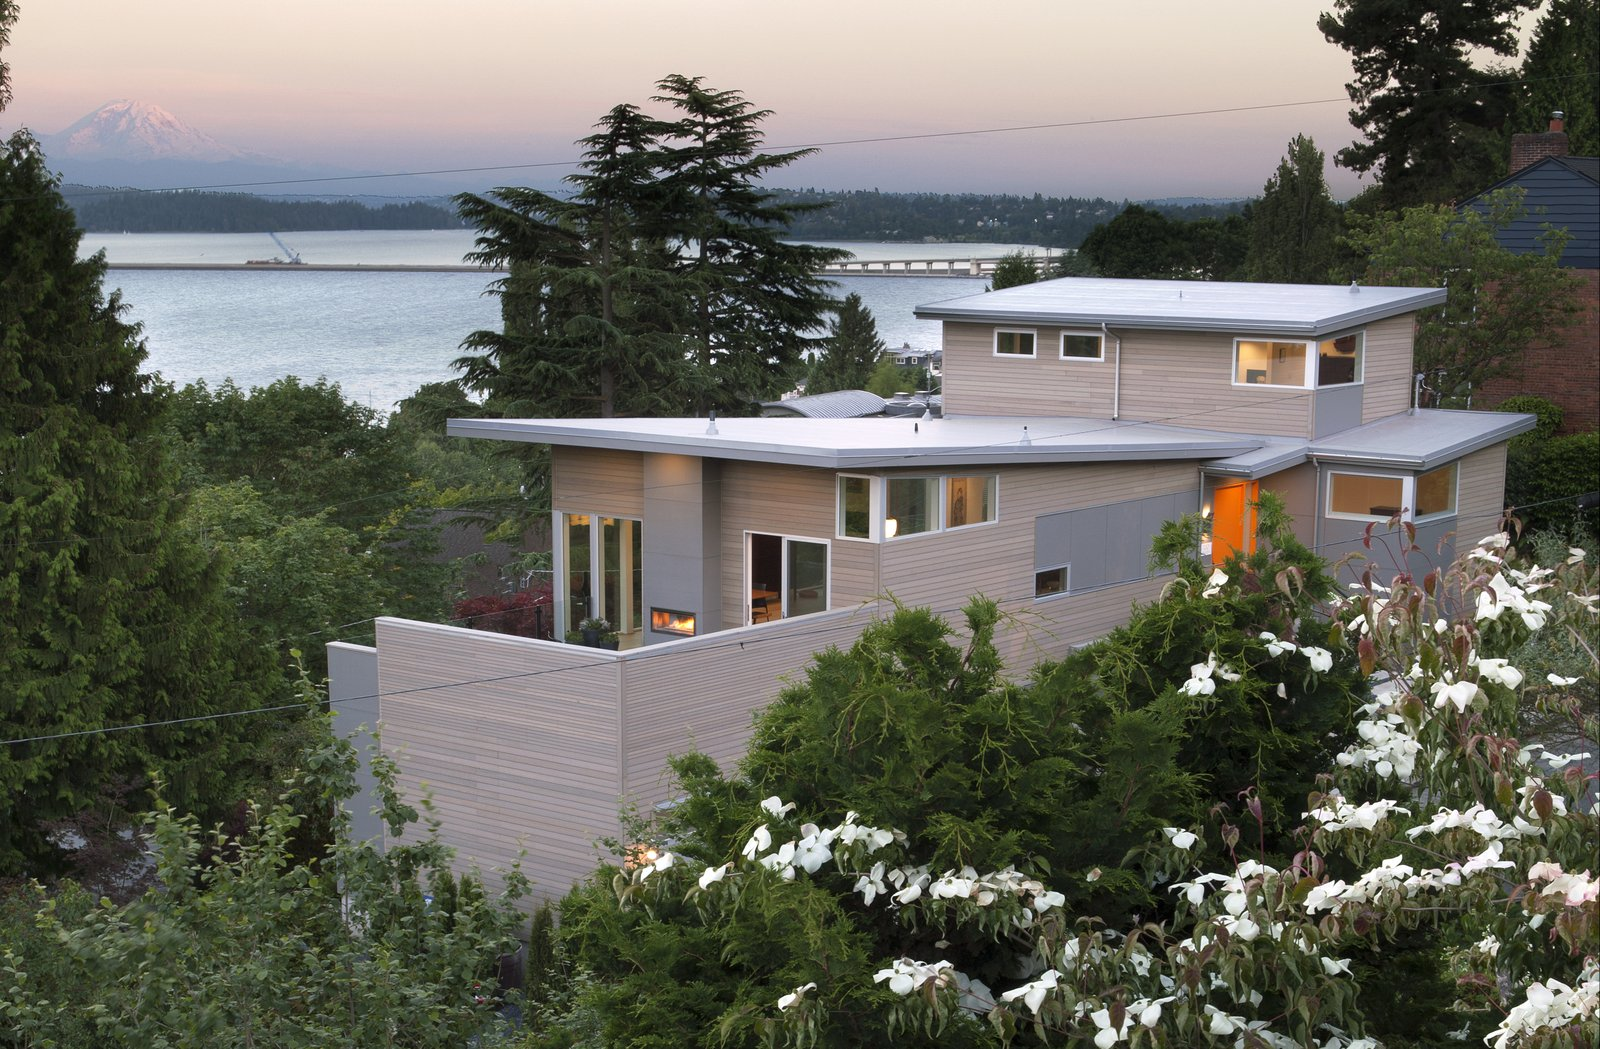 Madrona Residence by Wilkens Design Studio